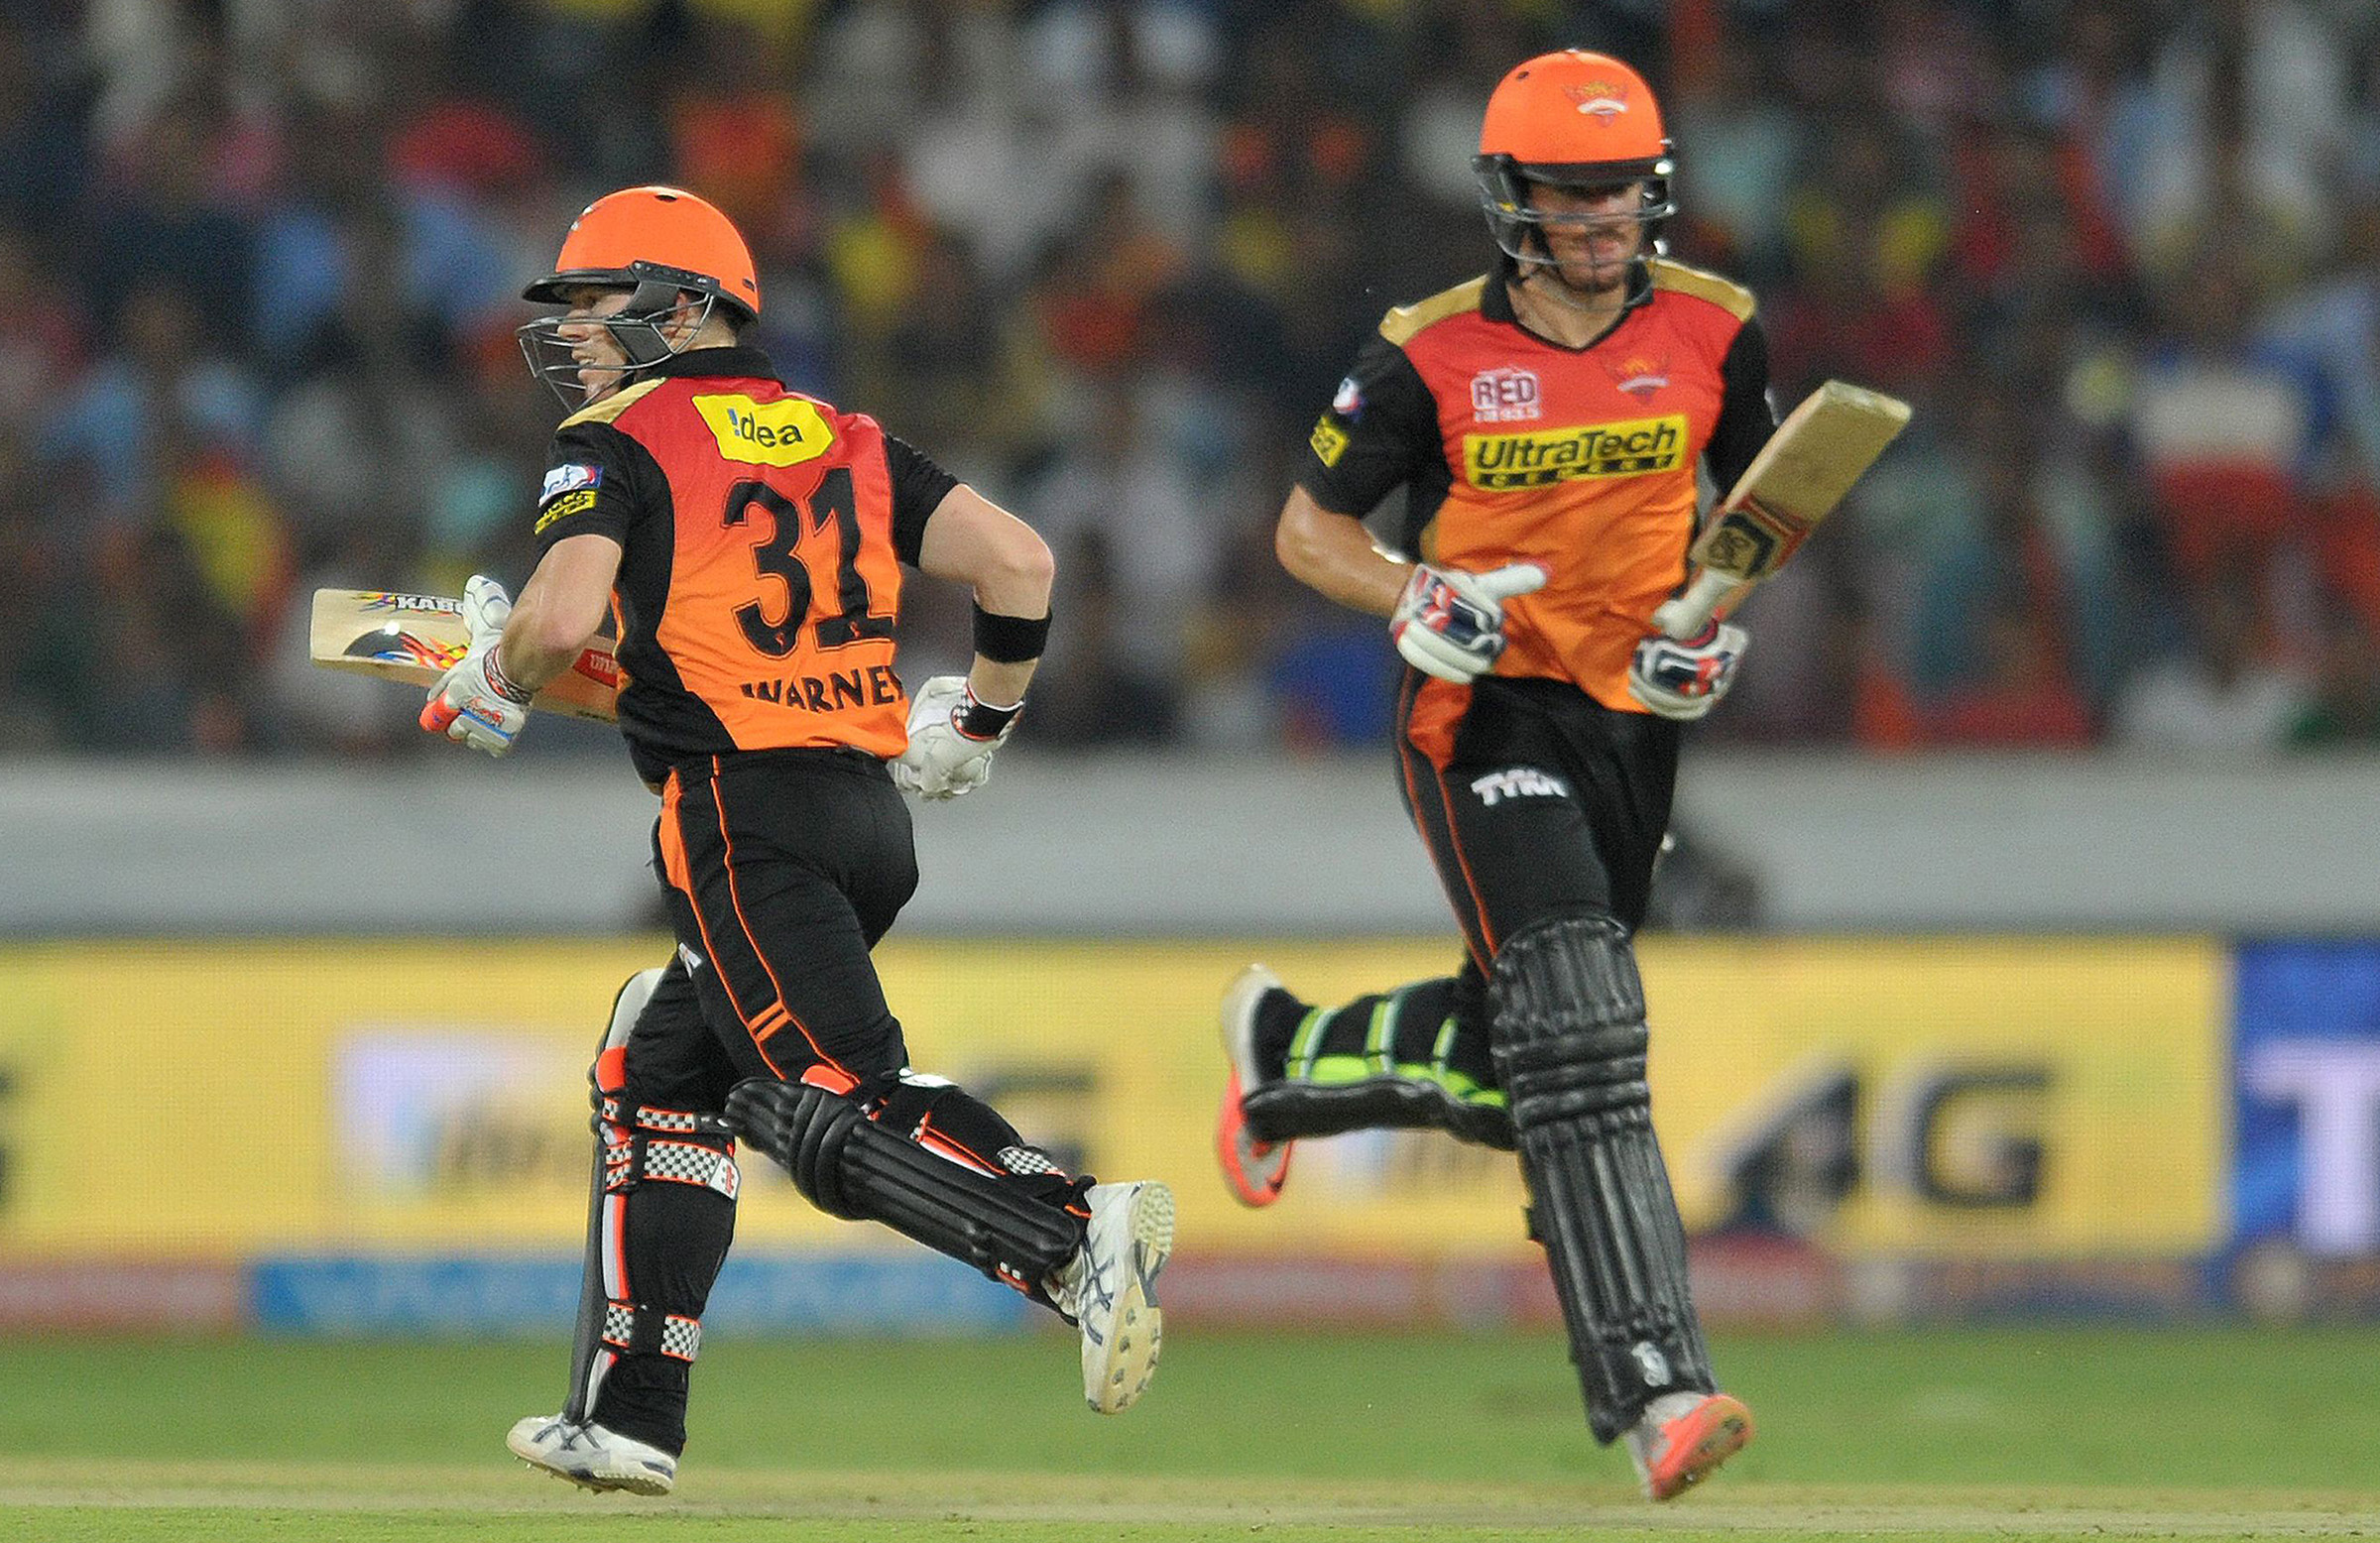 Henriques and Warner have played together at NSW and Sunrisers Hyderabad // Getty